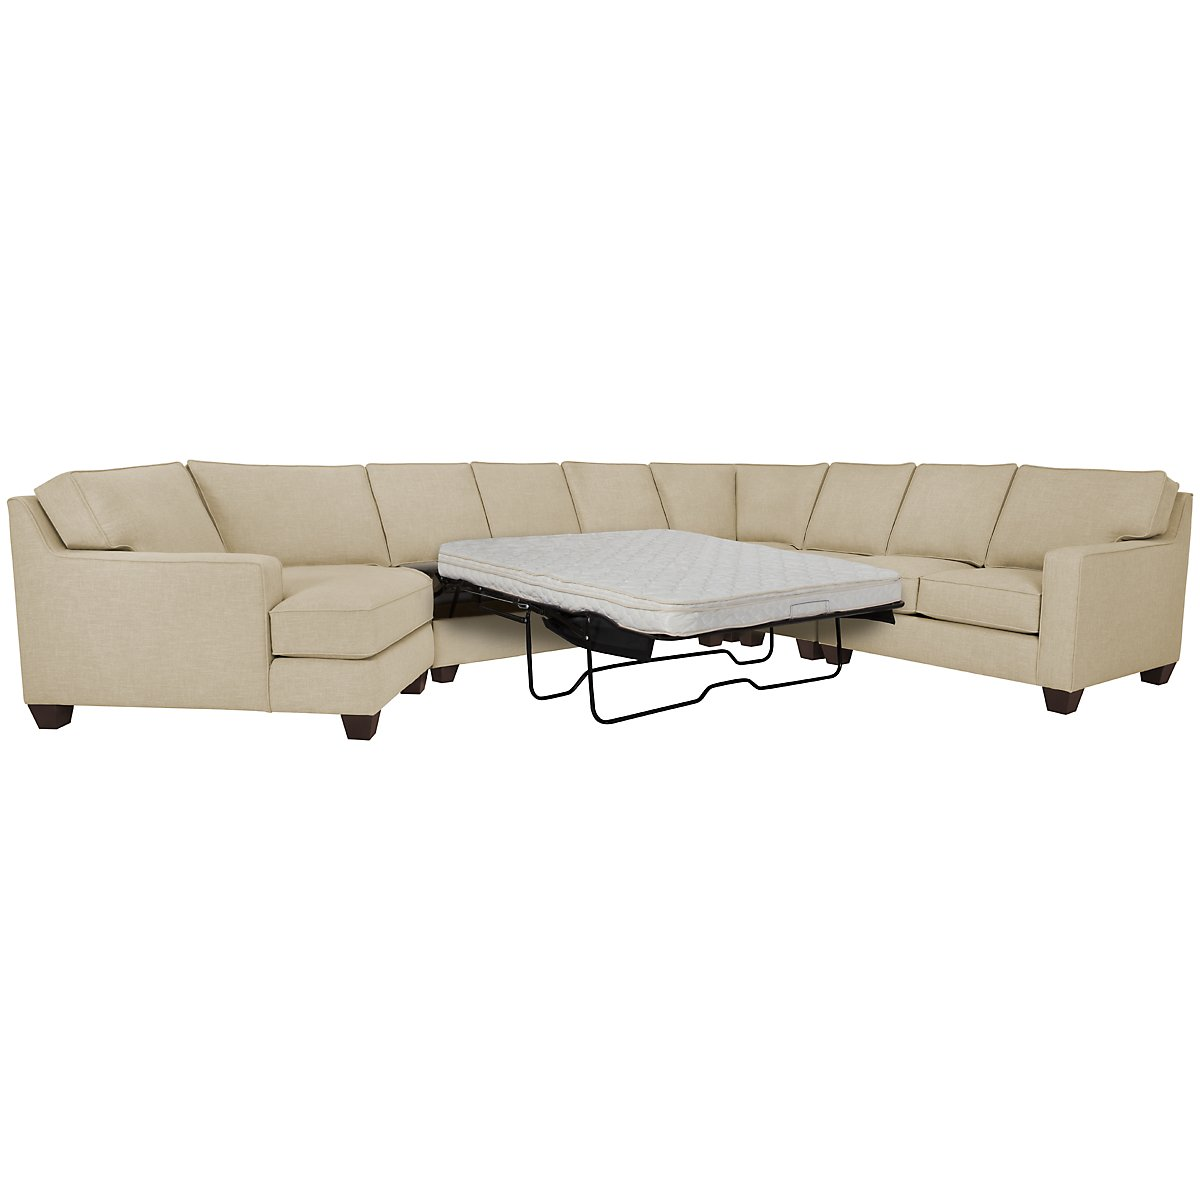 York Beige Fabric Large Left Cuddler Innerspring Sleeper Sectional